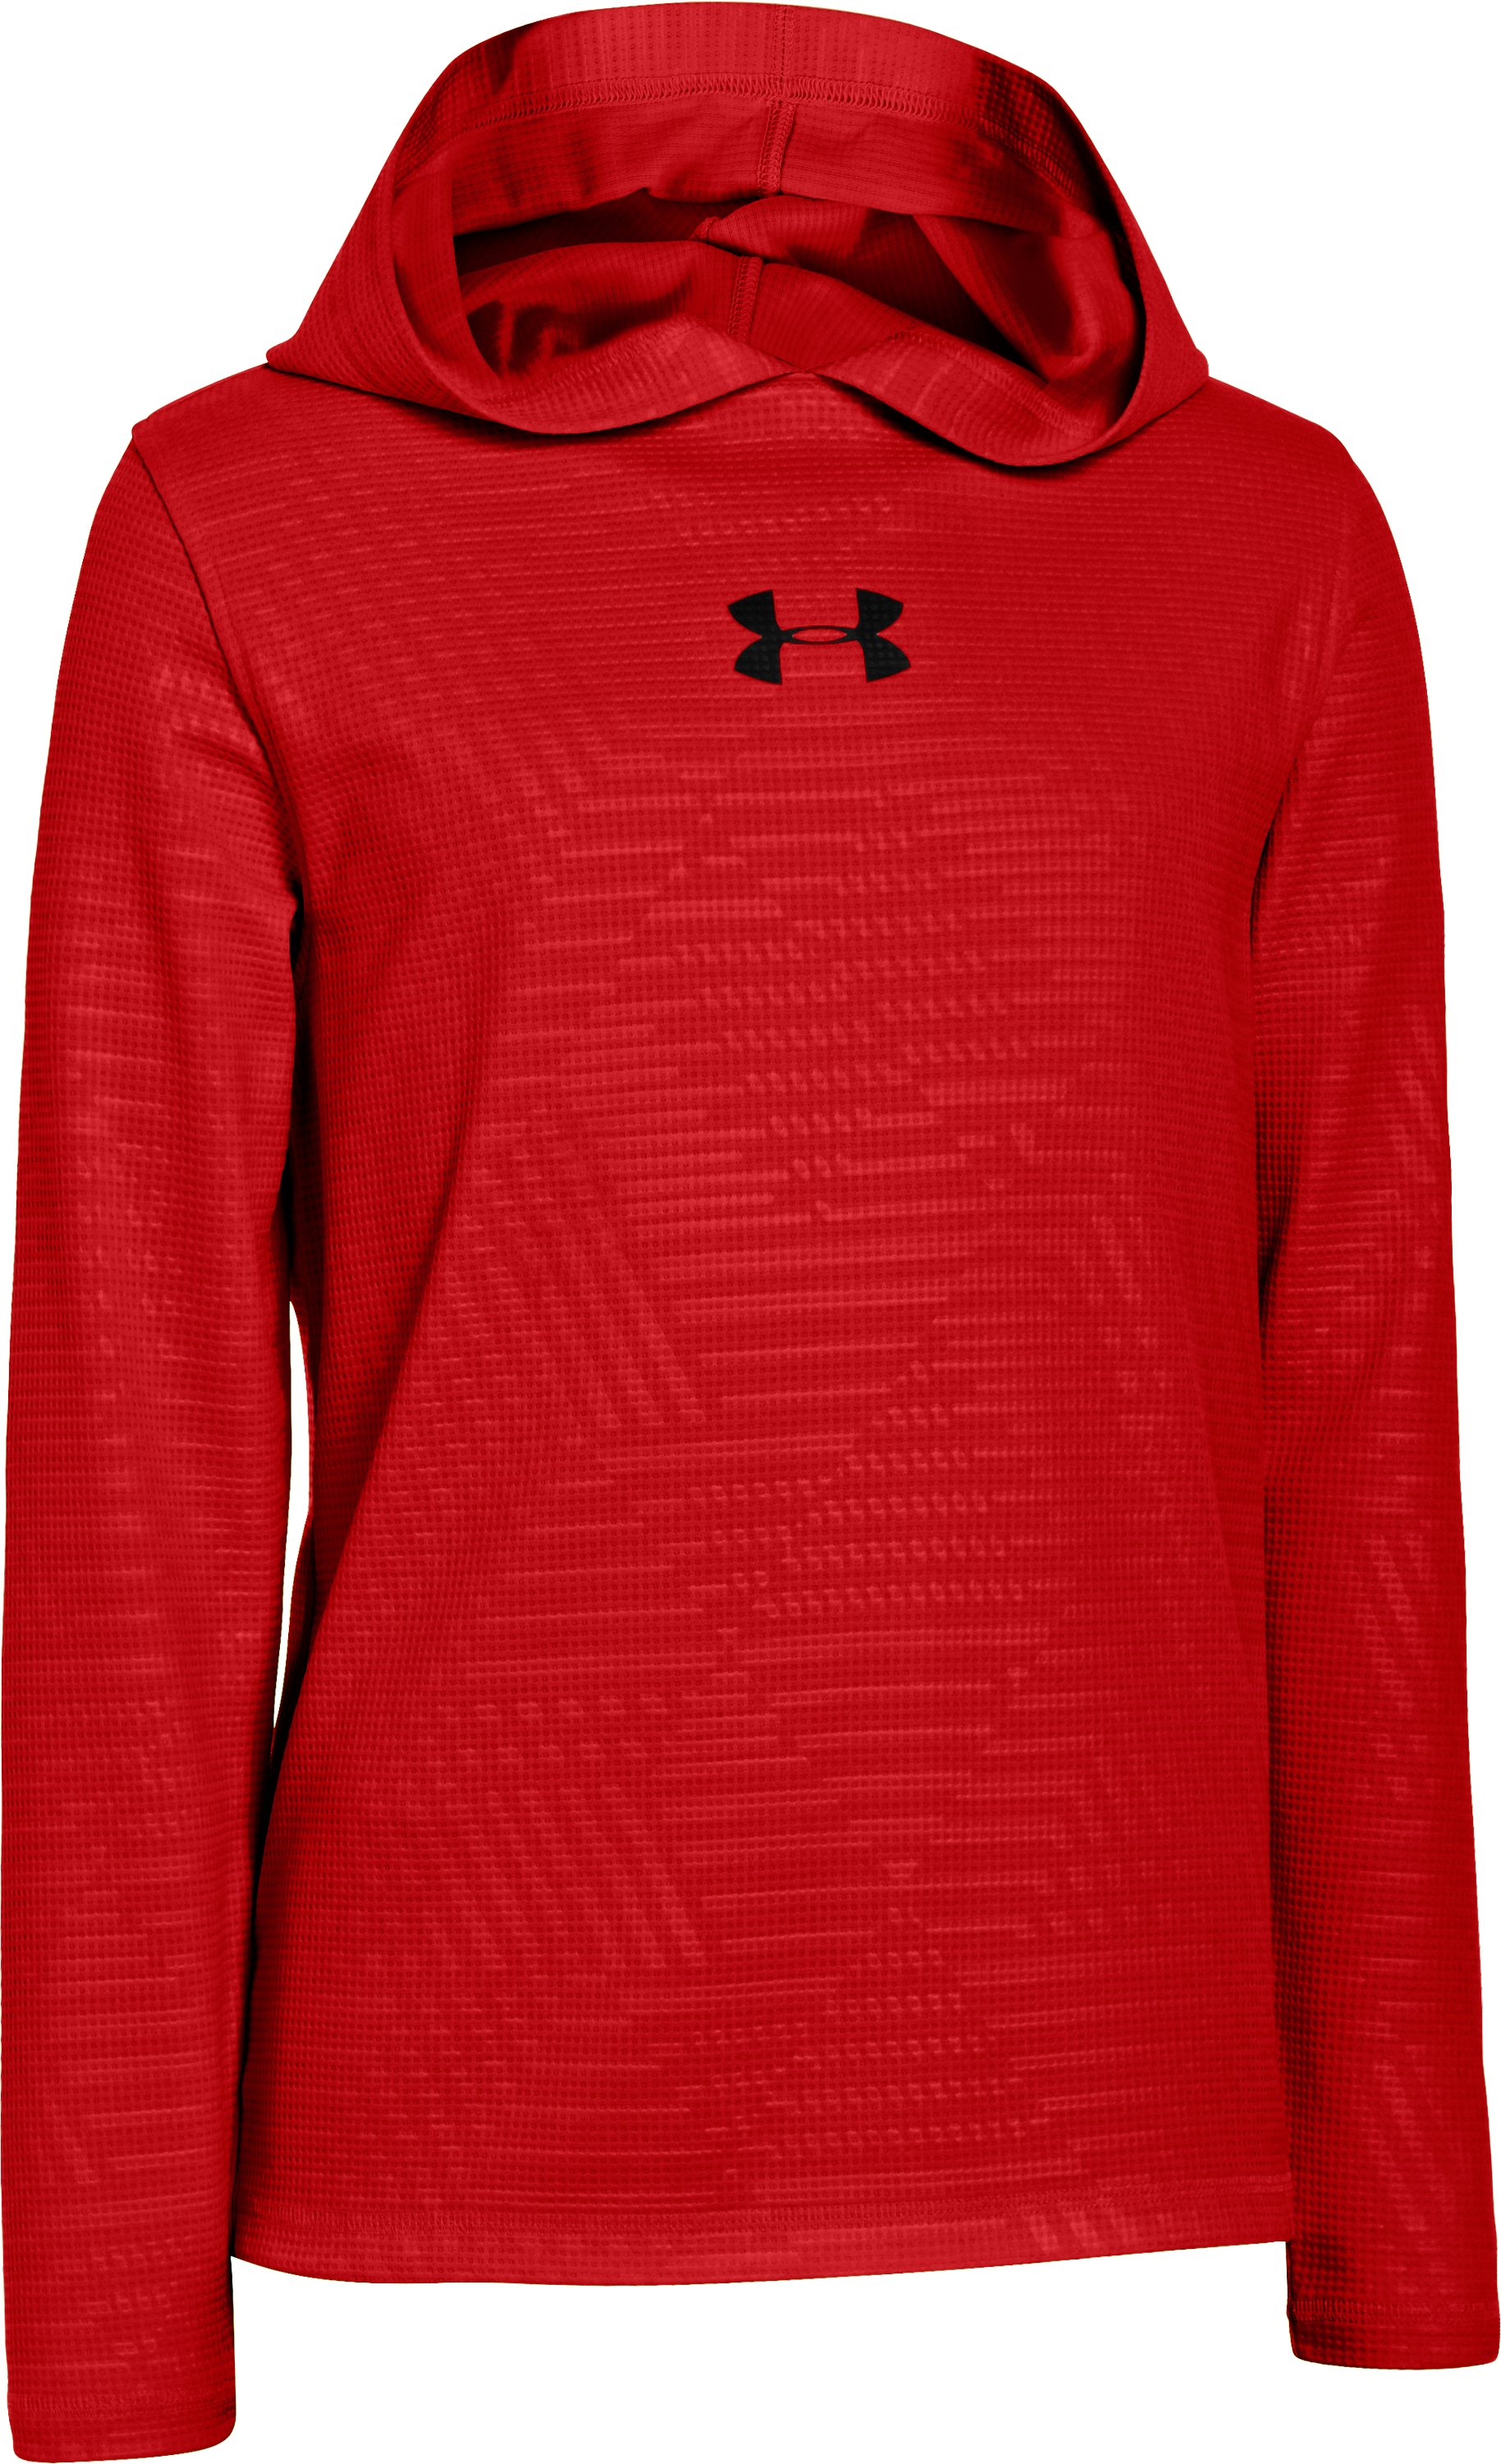 Boys' UA Momentum Waffle Hoodie, Red, zoomed image